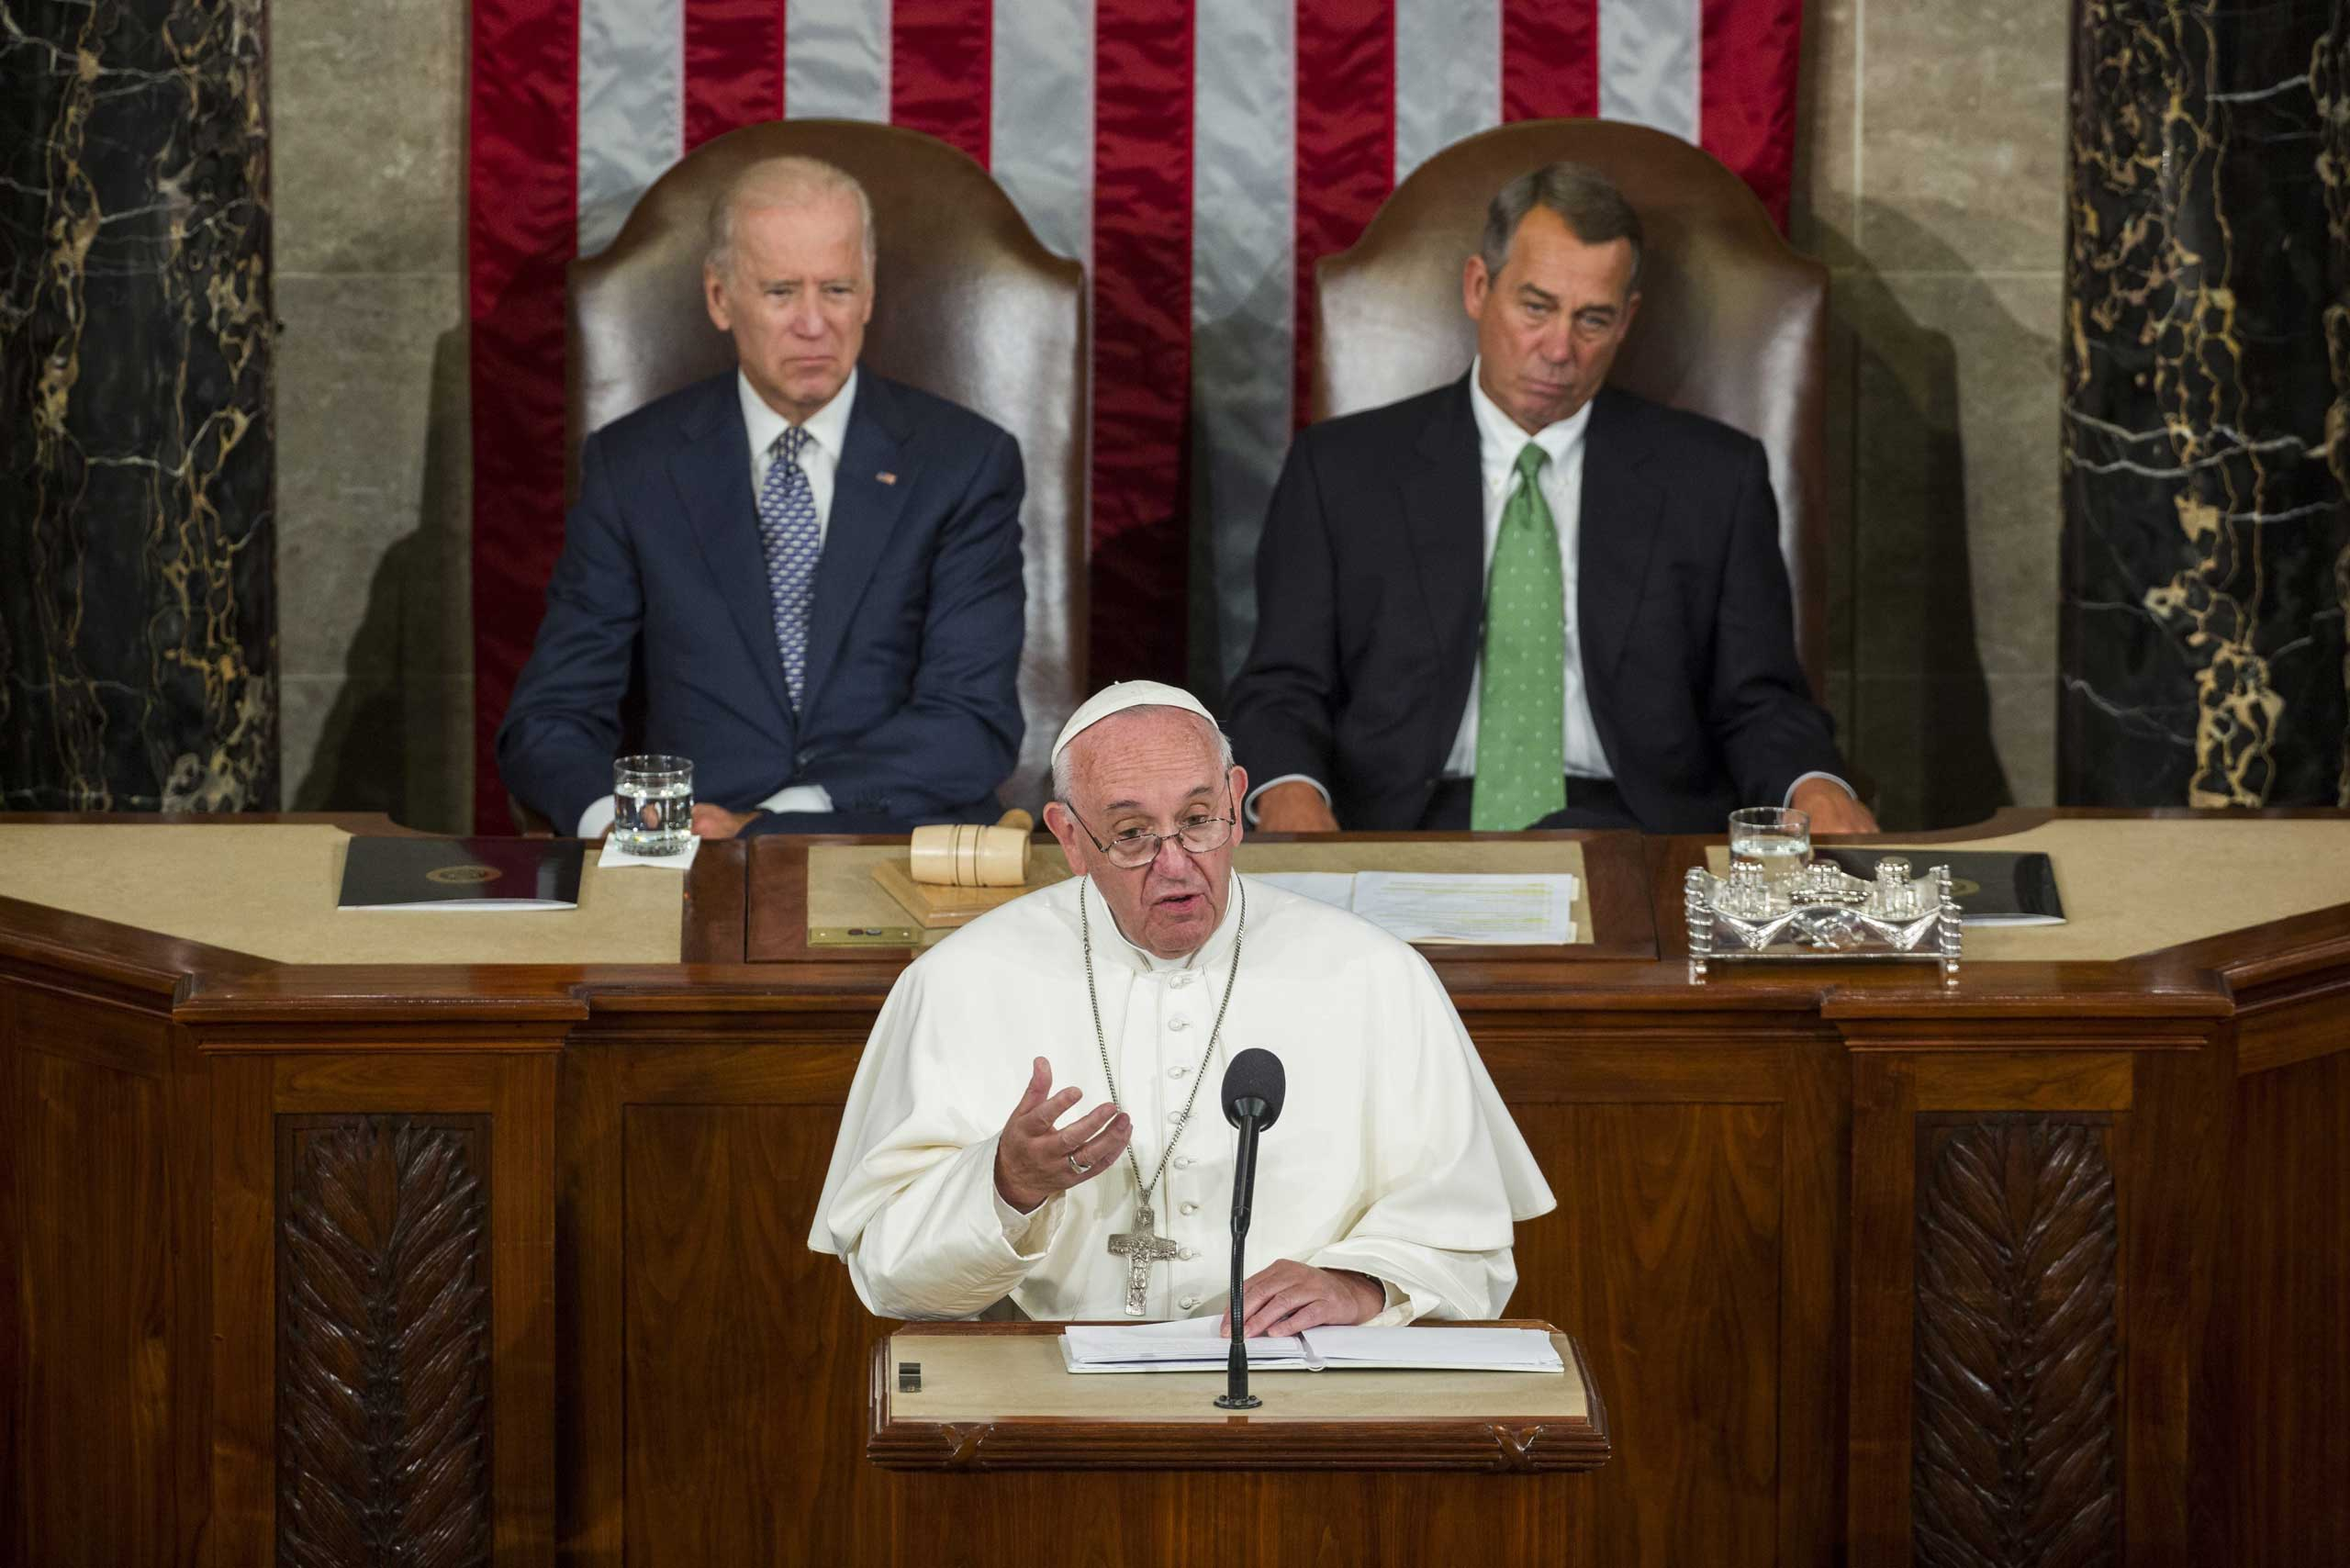 Pope Francis, addressed a joint meeting of the U.S. Congress with with Vice President Joe Biden and Speaker of the House John Boehner in the House Chamber of the U.S. Capitol in Washington, on Sept. 24, 2015, urging legislators to work together to solve problems and avoid polarization